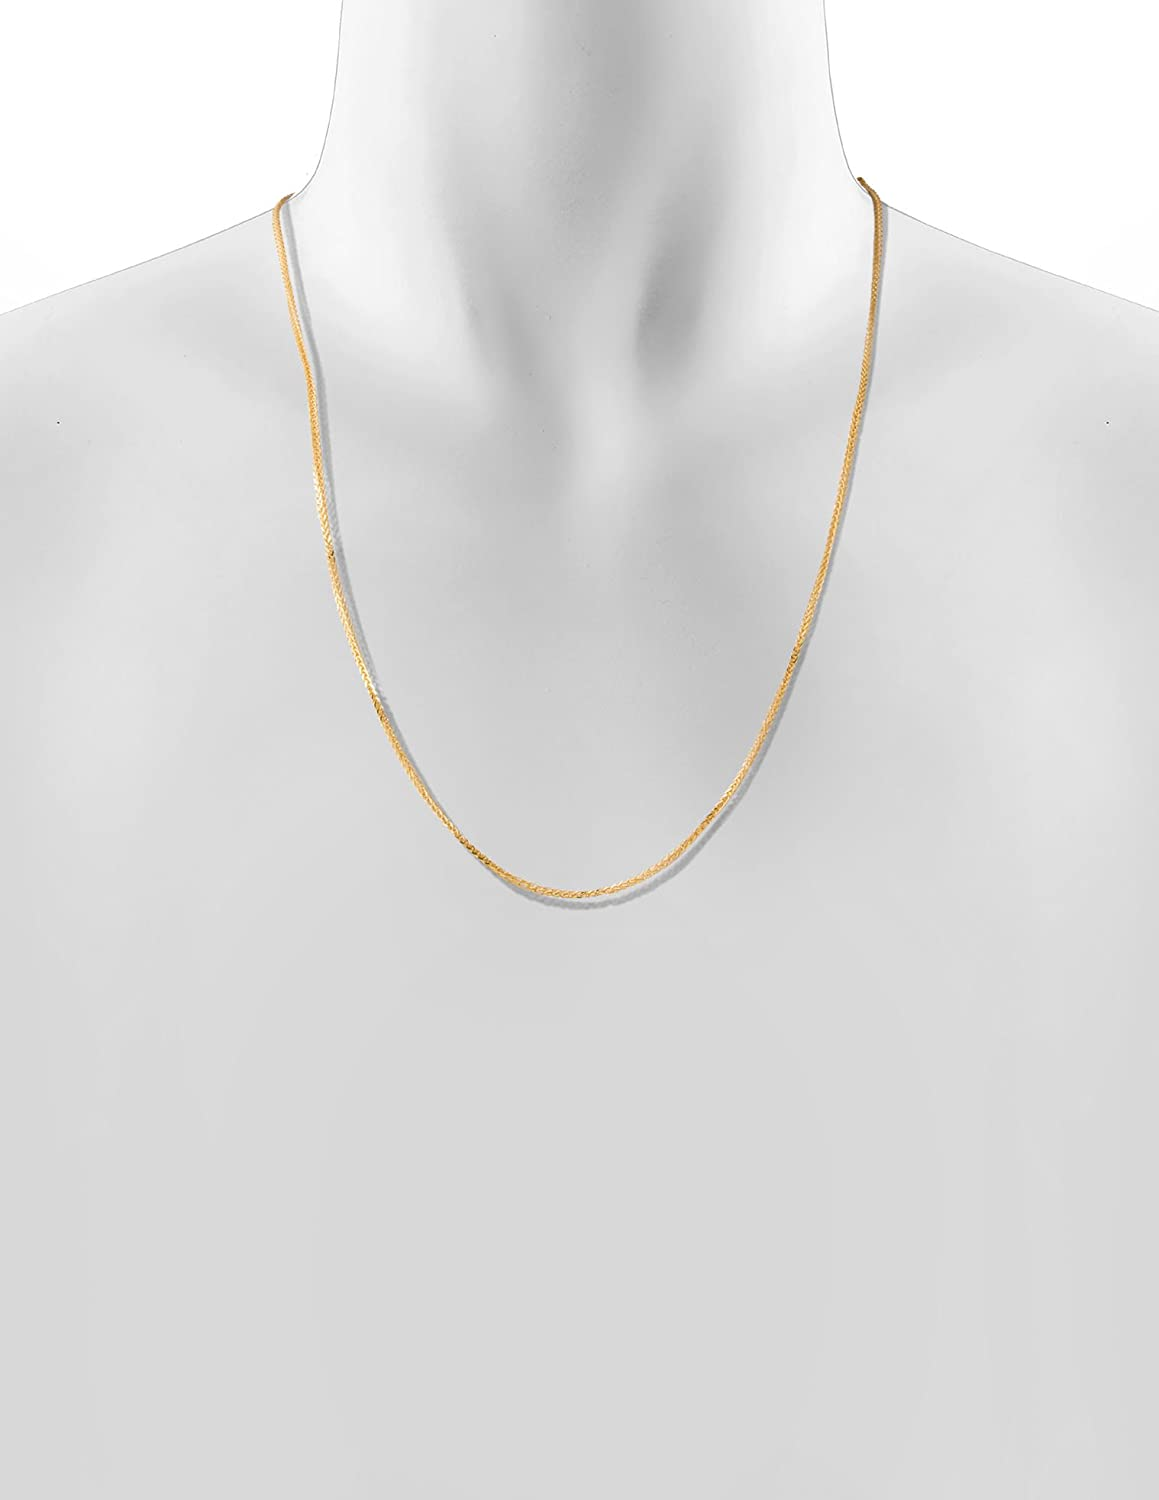 Solid Gold 14K Square Wheat Espiga Hollow Link Chain Necklace 1.8mm Wide Lengths 16 to 24